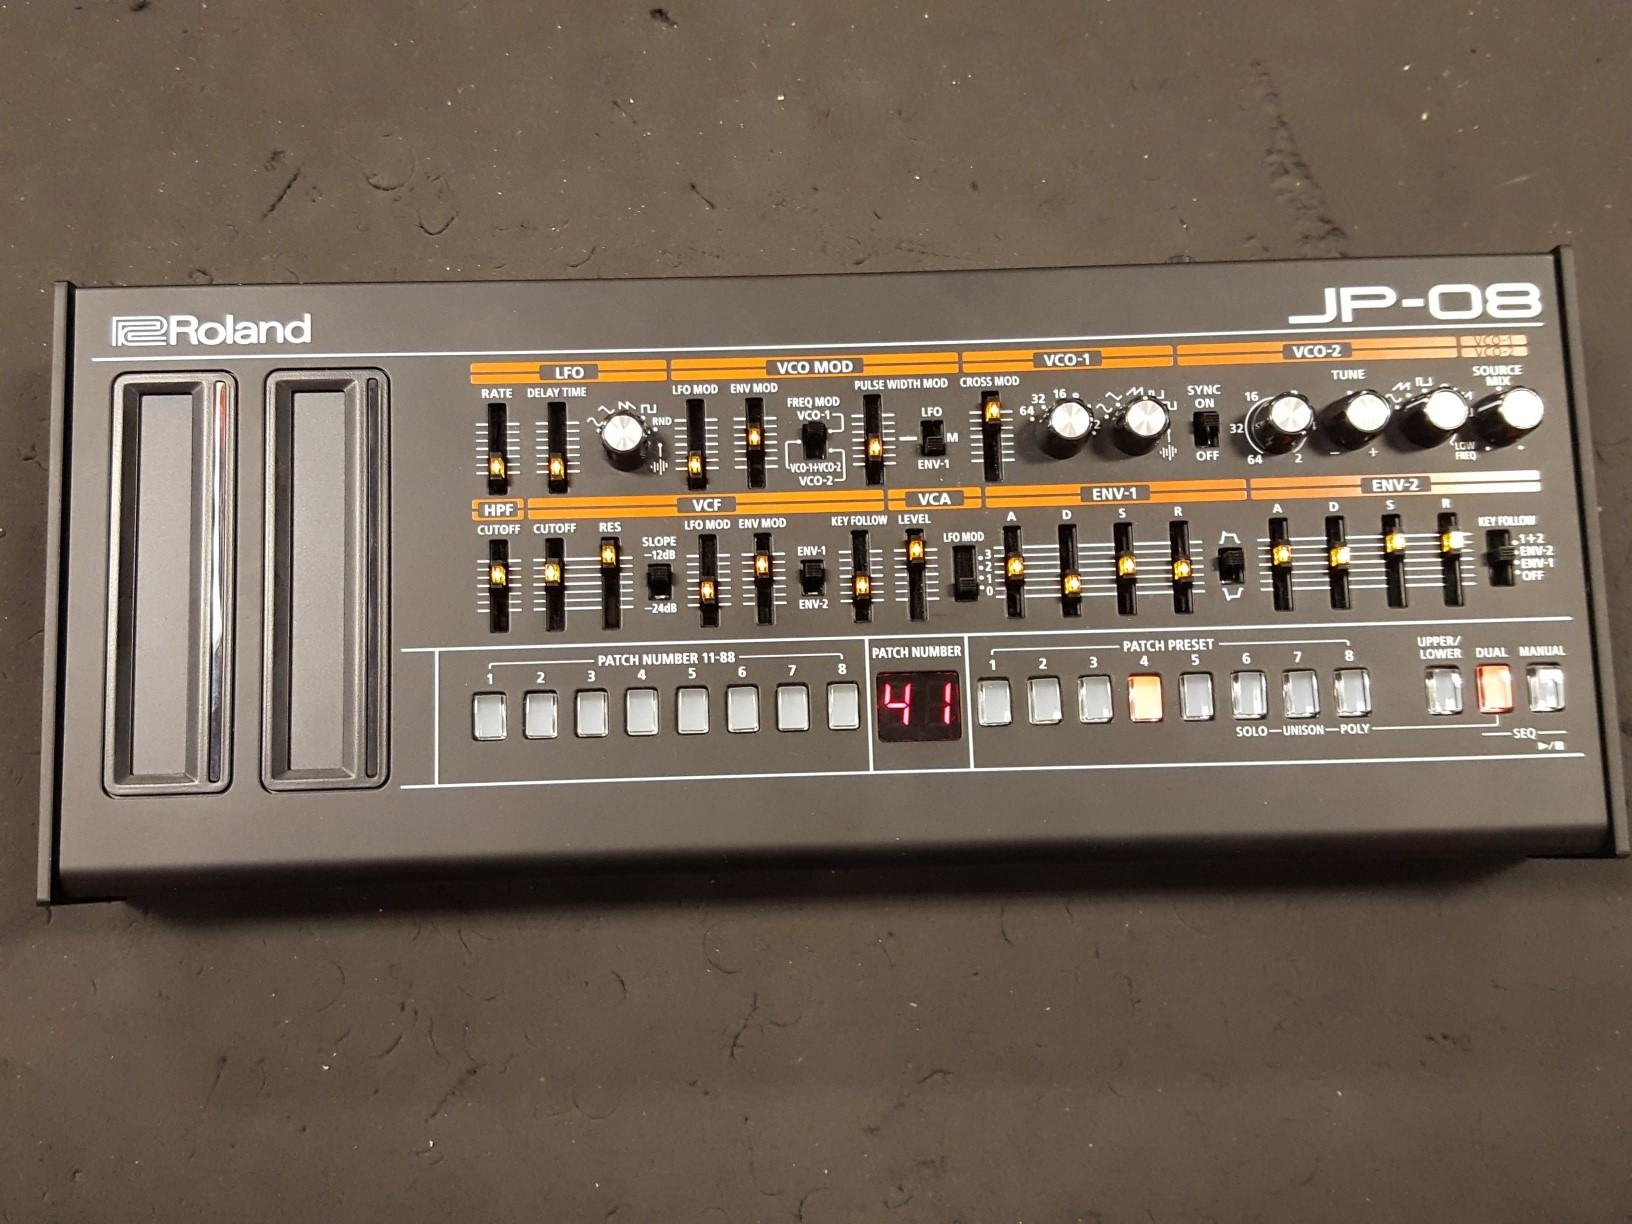 Roland - JP-08 with DK-01 Module Dock